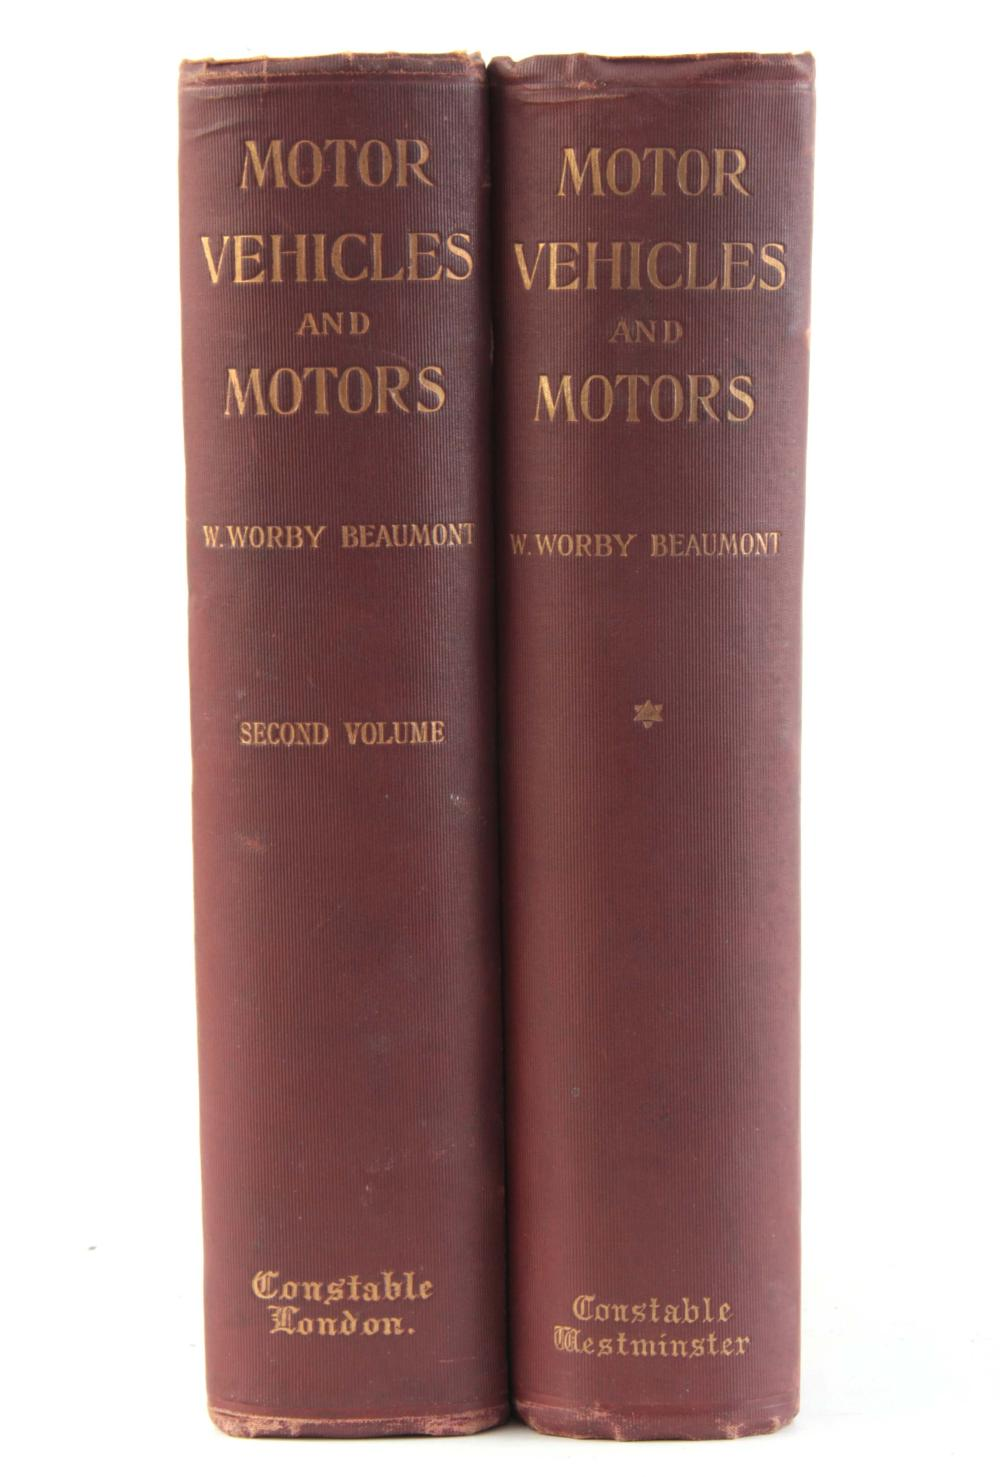 A SET OF 2 VOLUMES of MOTOR VEHICLES AND MOTORISTS